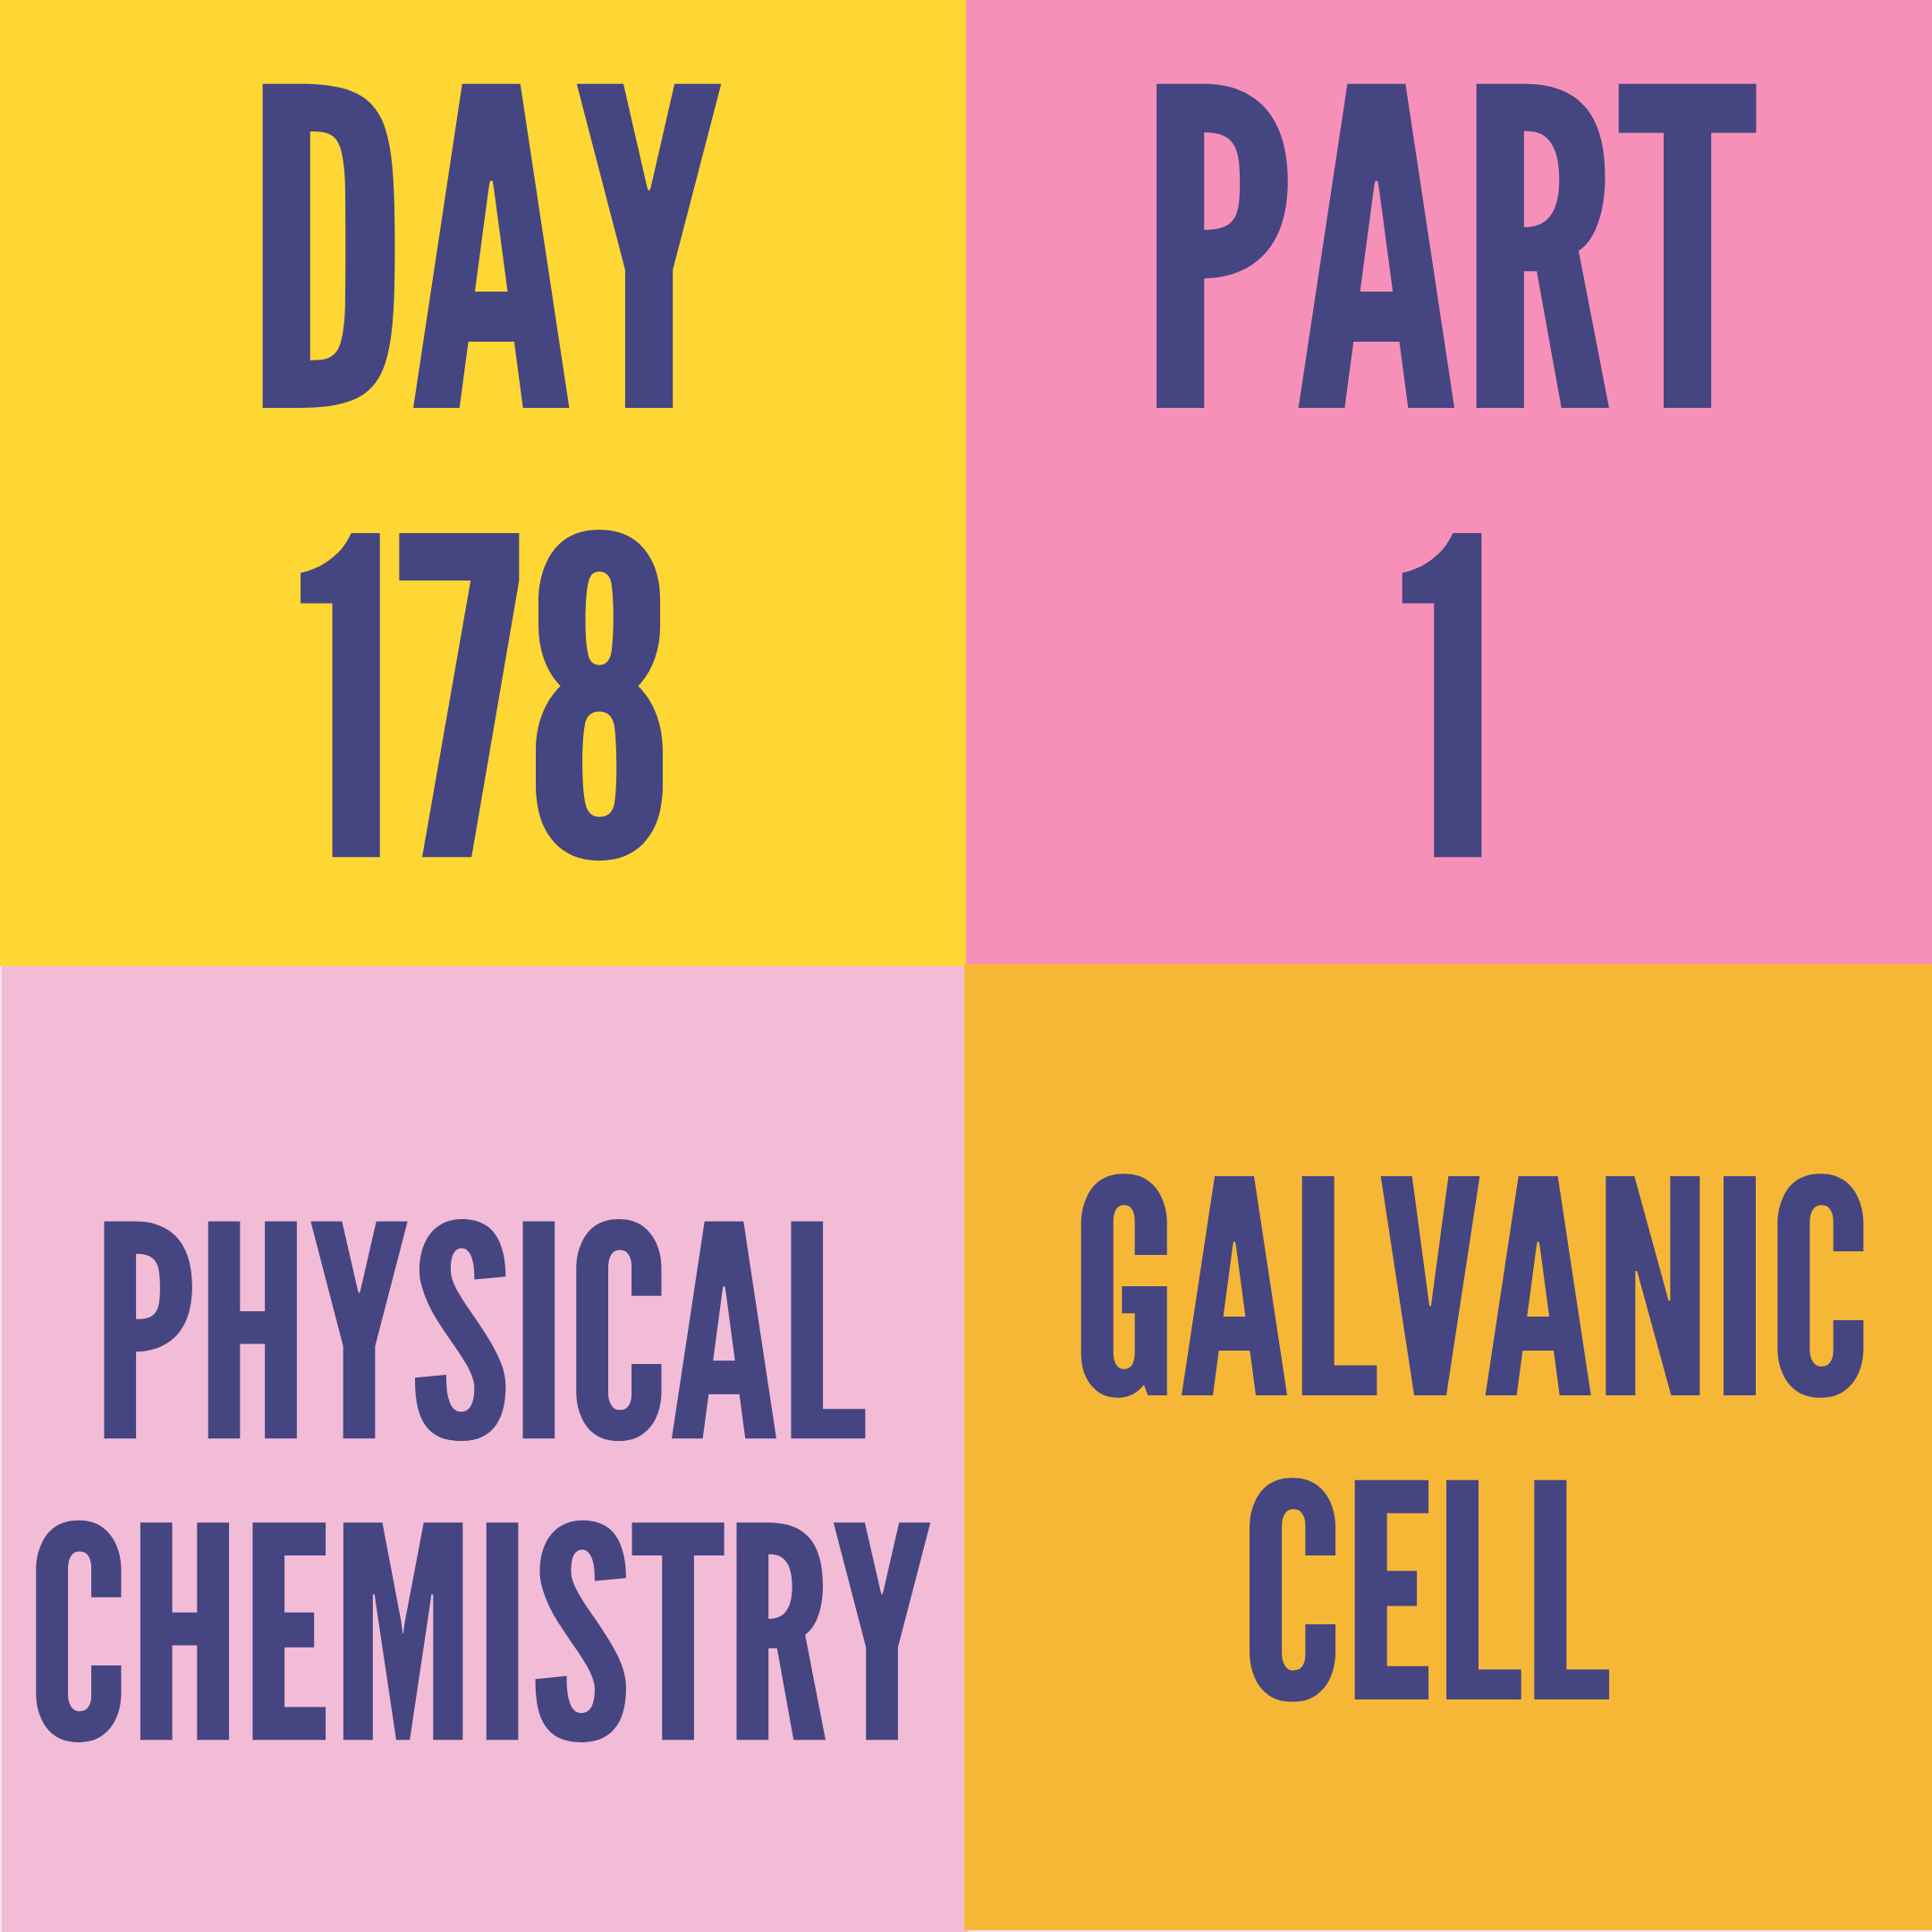 DAY-178 PART-1 GALVANIC CELL